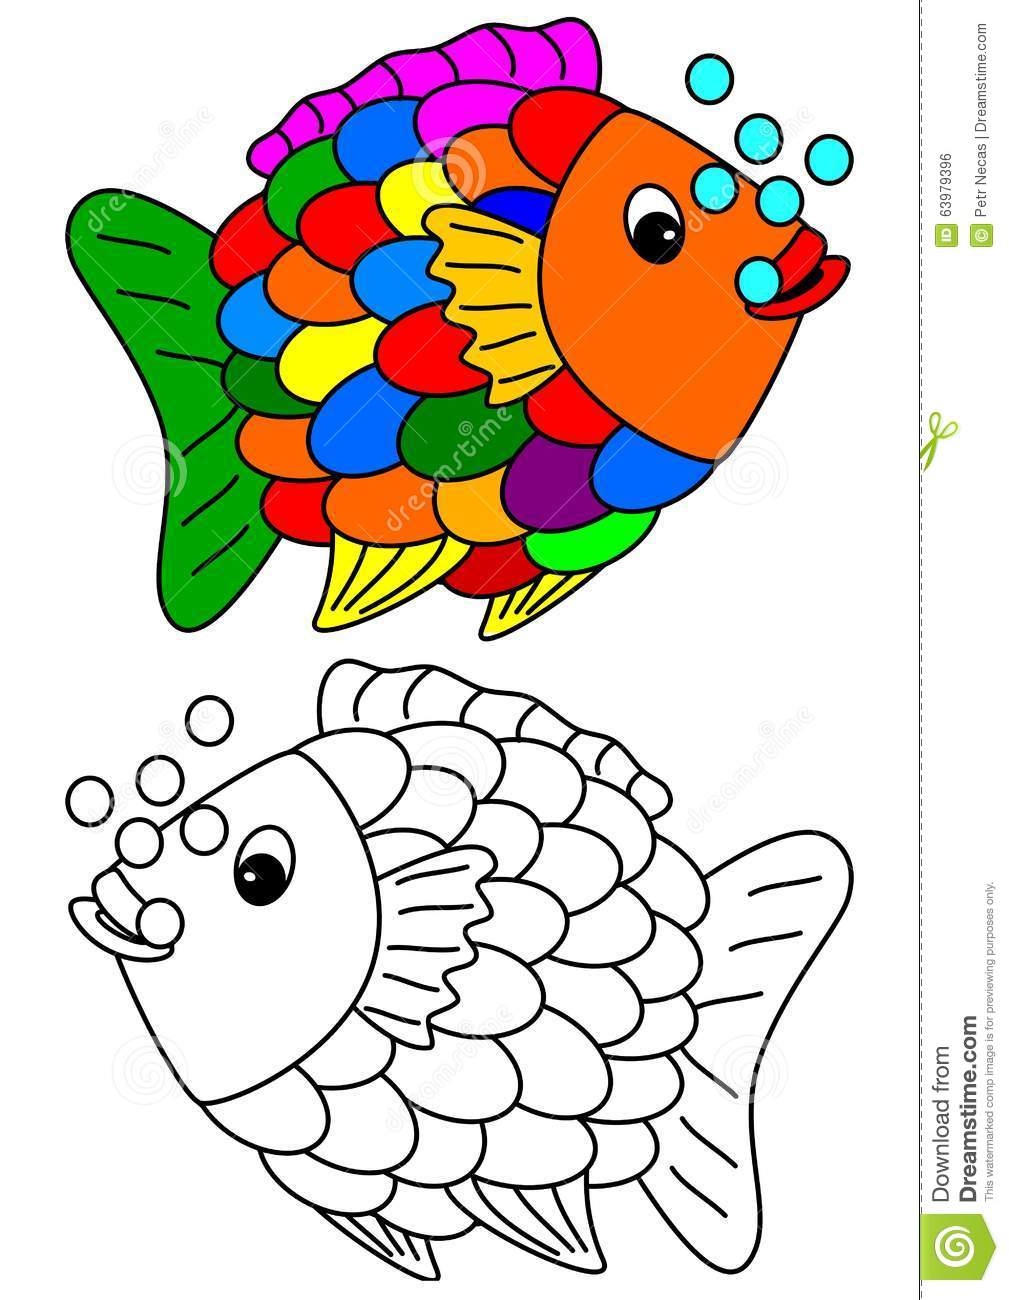 Color coloring book for young children colorful fish for Colorful fish book